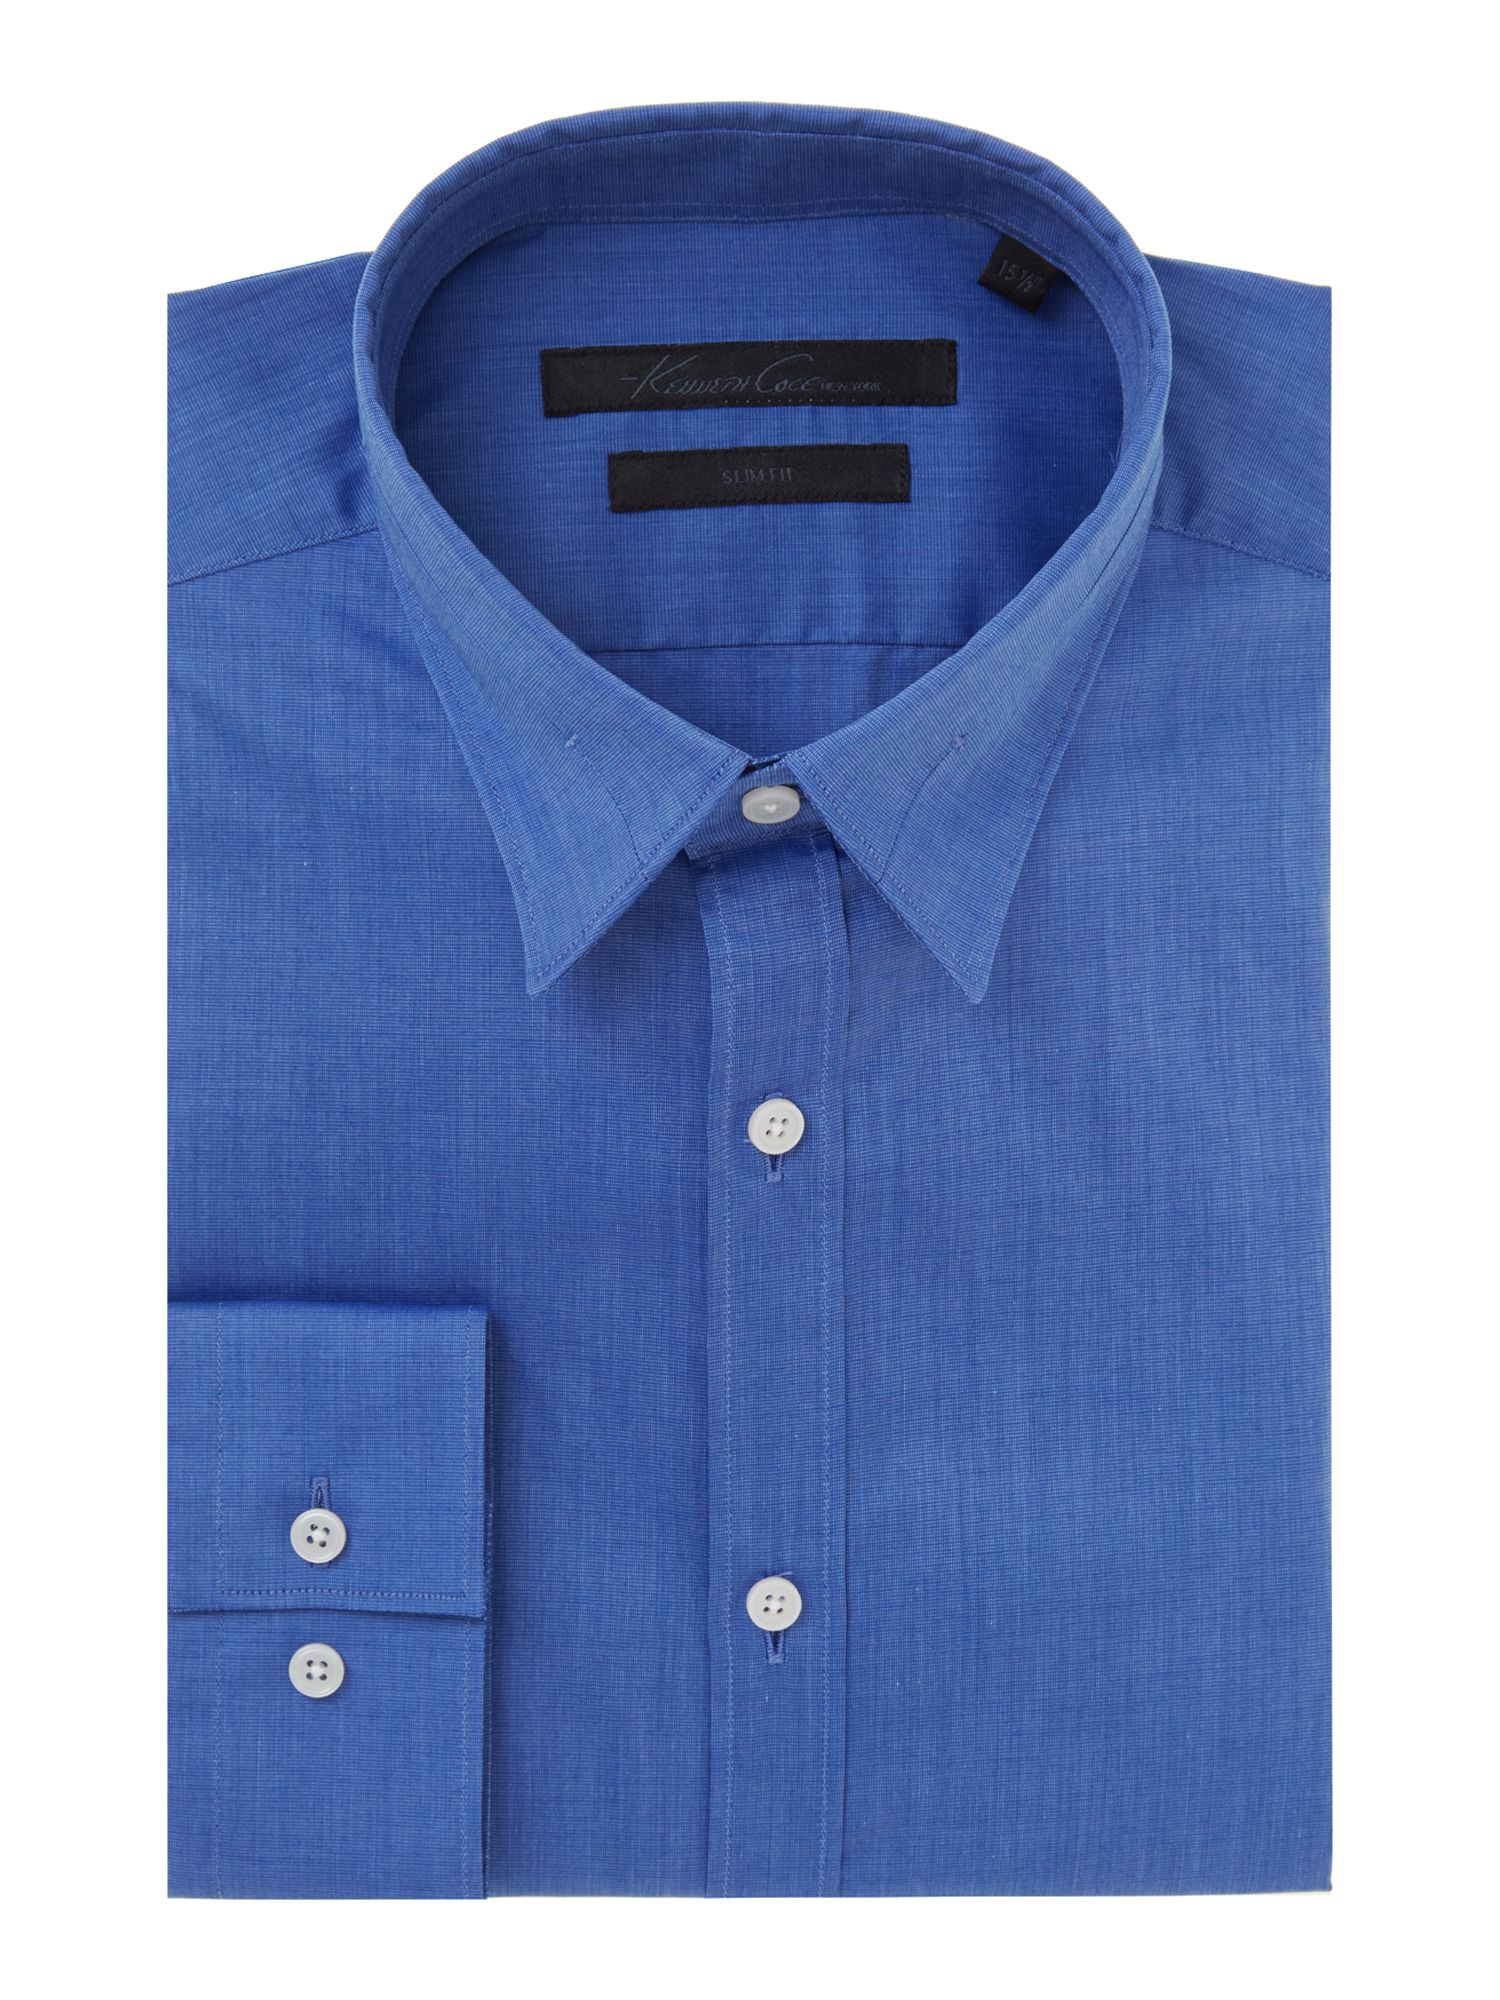 Jackson Collar Detail Shirt